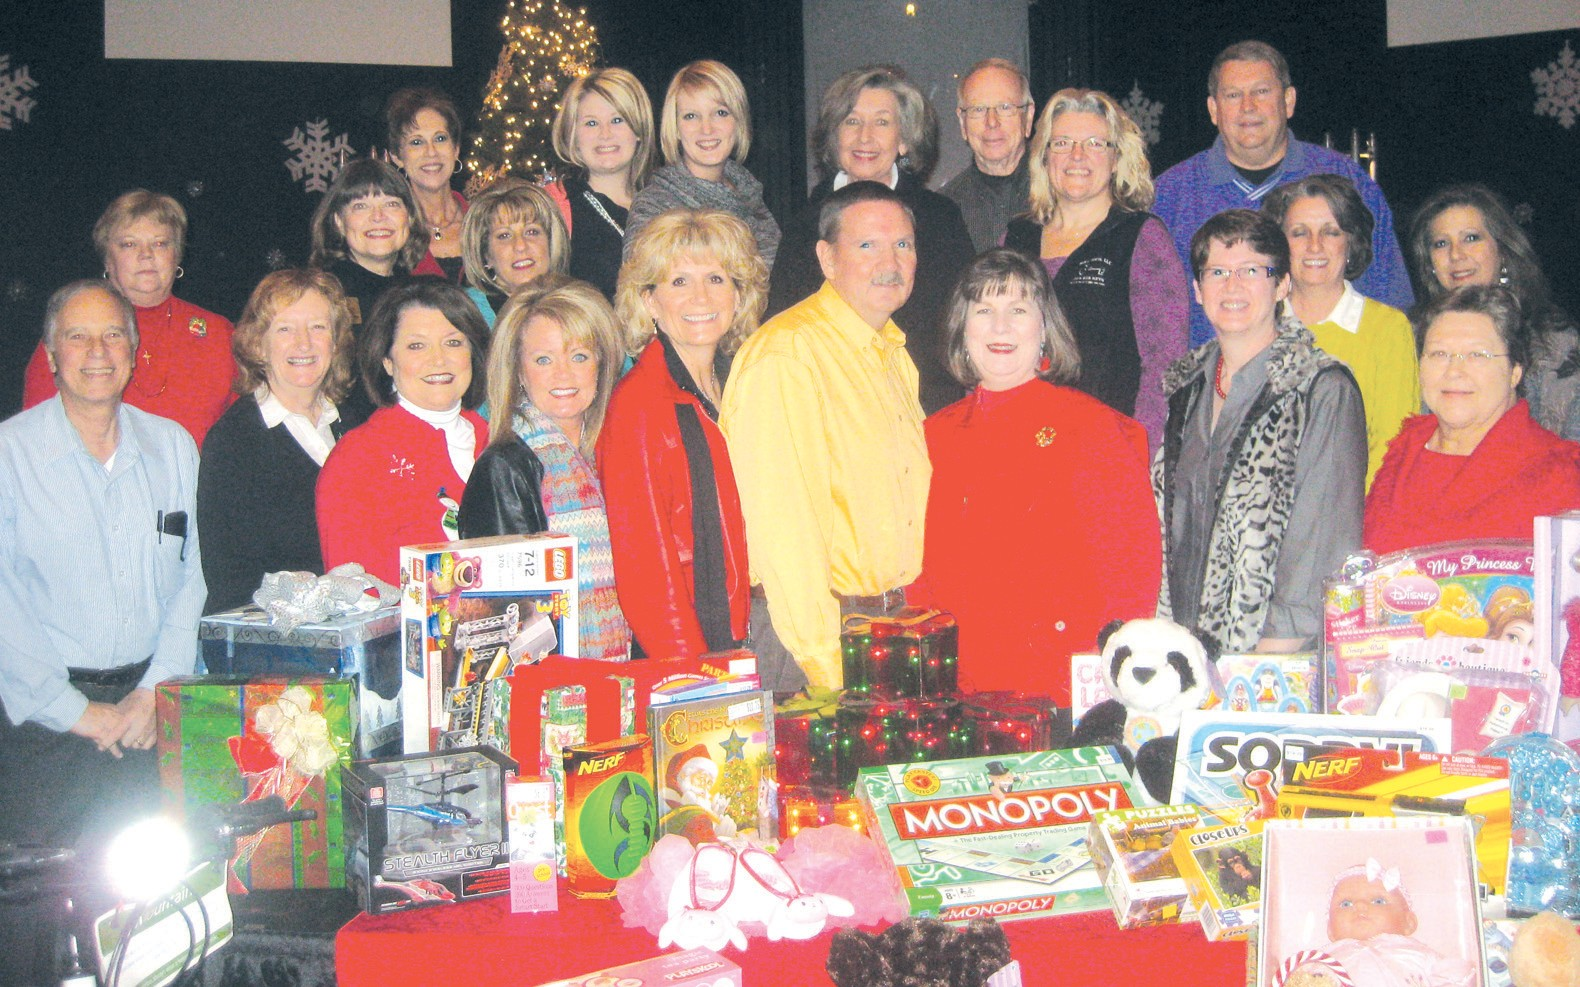 """Blount Real Estate Network members showed their Christmas spirit at a luncheon last week by playing Santa to six children whose wish lists were provided by Jerry Renno, Blount County Children's Center director (lower left corner). The result was the $1200 treasure trove of presents seen here, plus a bike that doesn't show up clearly in the photo. The presents were given to the Children's Center to relay to the children. Network members are Realty South, M&R Realty, and Blount Realty Team. They bought presents using proceeds from raffle tickets sold. Teresa Sloan, (fourth from left) accepted the $250 door prize on behalf of her daughter who bought the winning ticket. """"Blount County has been good to us, and we wanted to give back by bringing joy to some of its children who need it,"""" said a statement from the group. – Ron Gholson"""